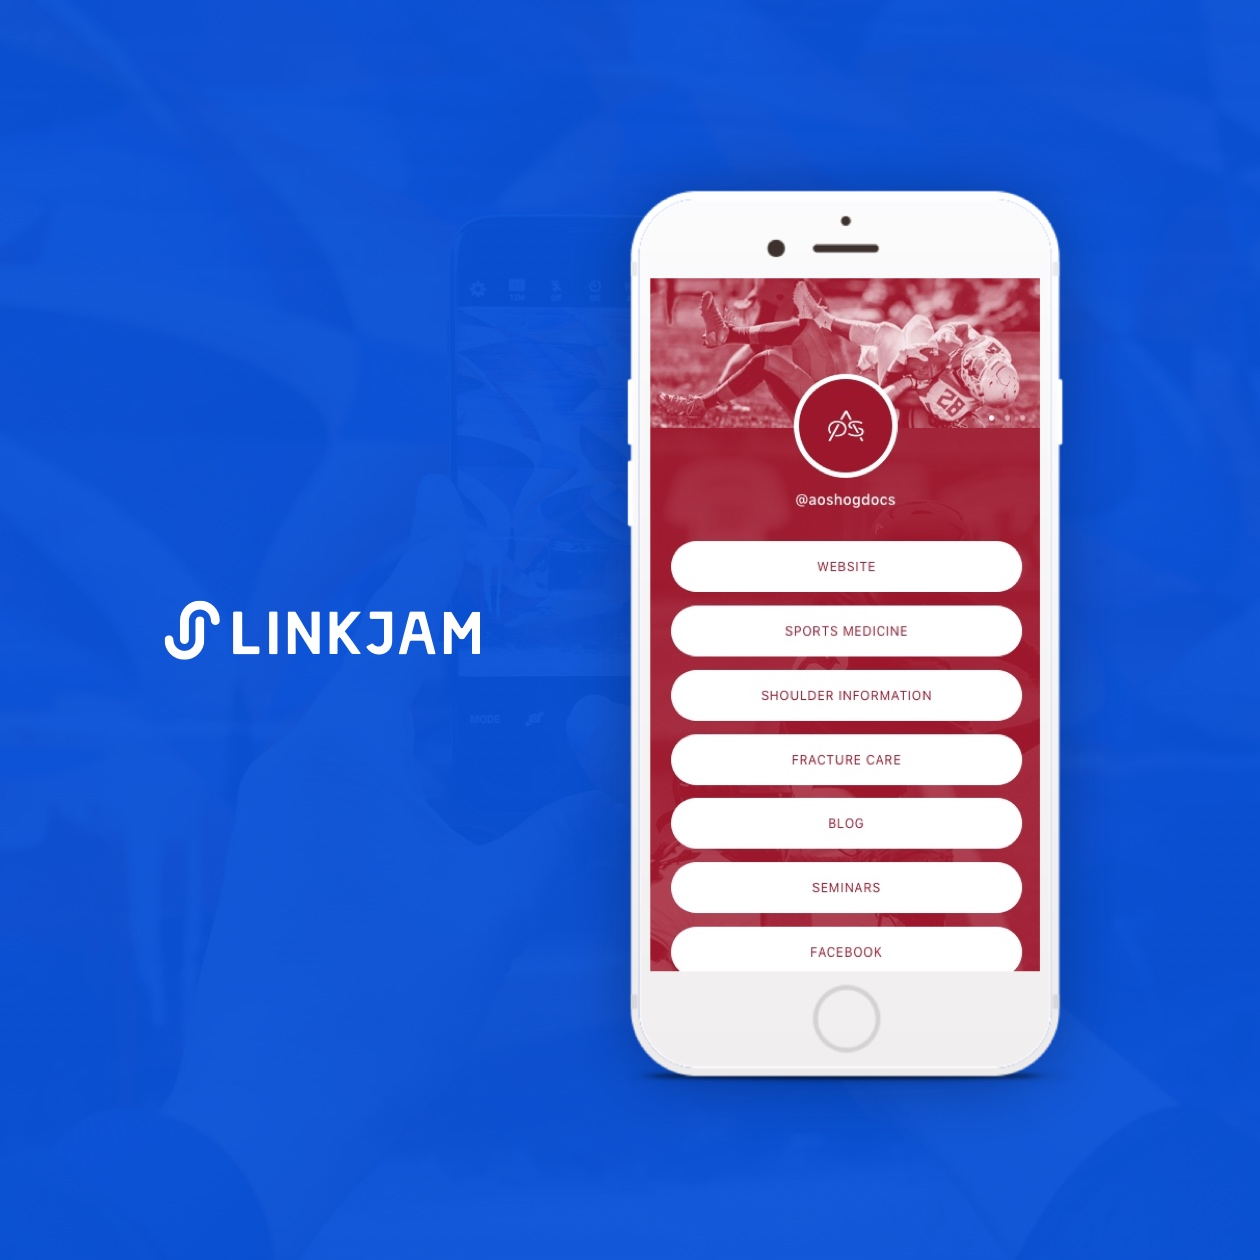 linkjam screenshot with advanced orthopaedic specialists